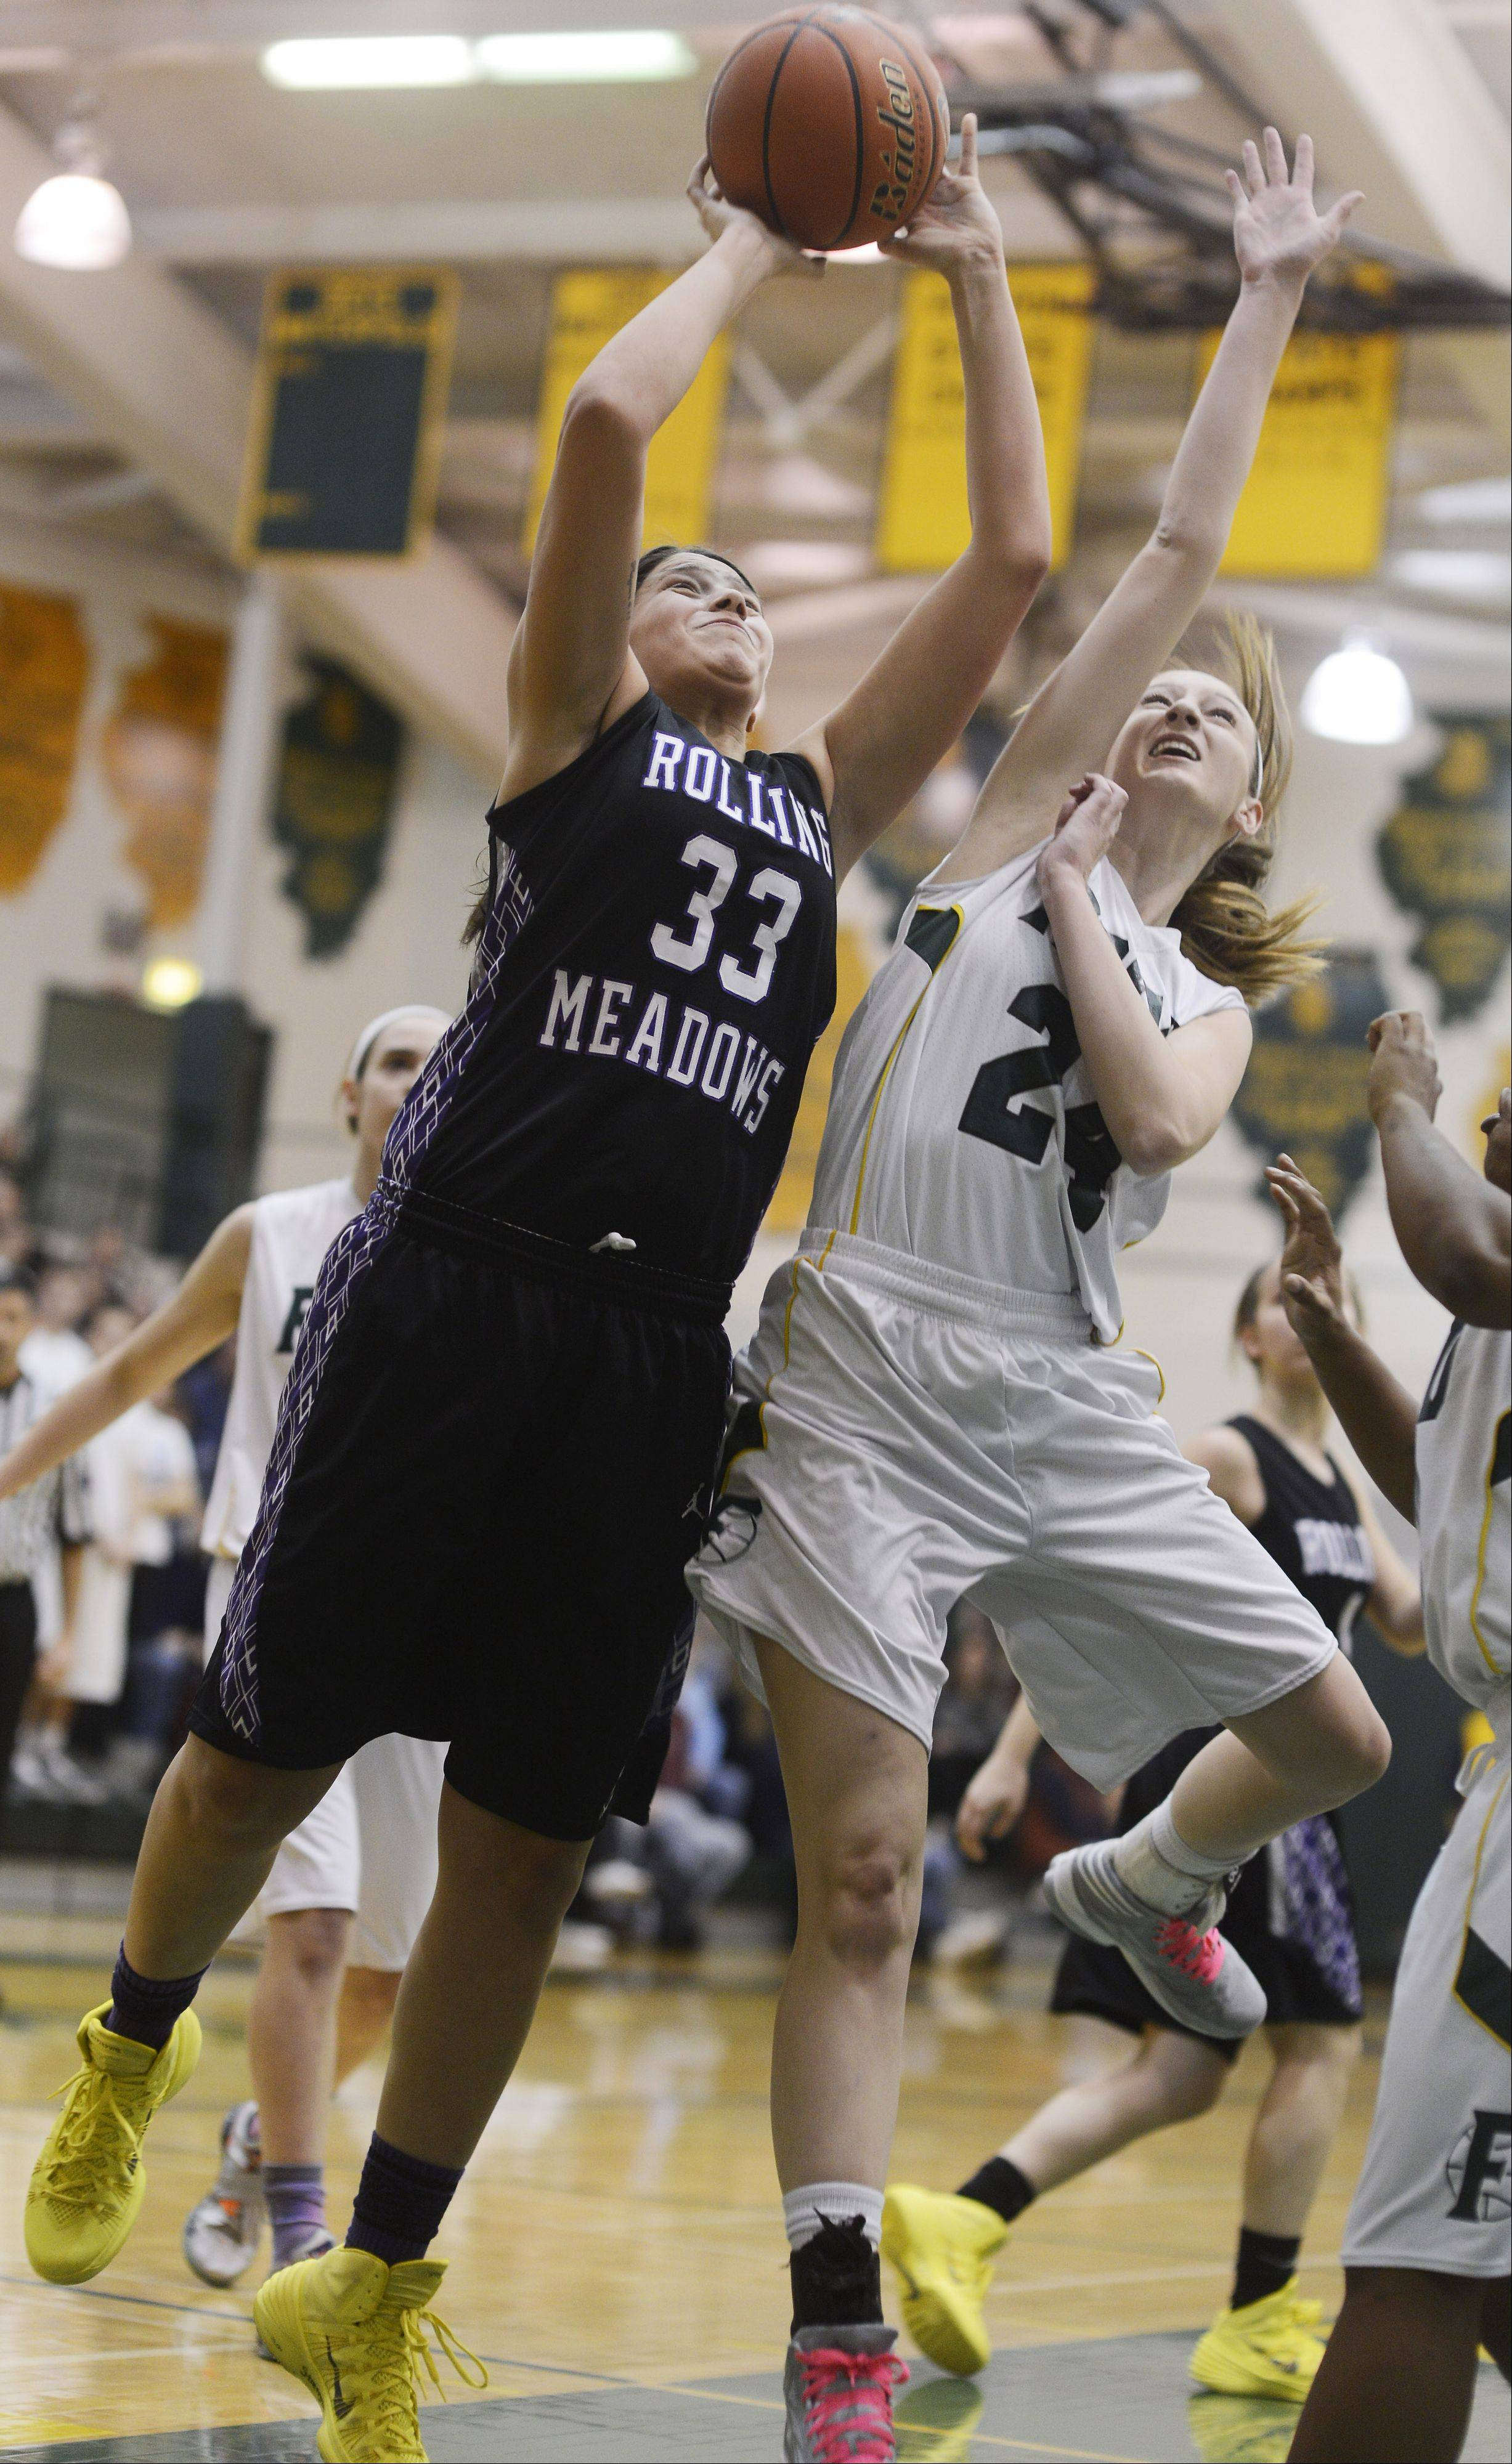 Rolling Meadows' Ashley Montanez, left, makes a strong move to the basket as Fremd's Hanna Labarge tries to block the shot.